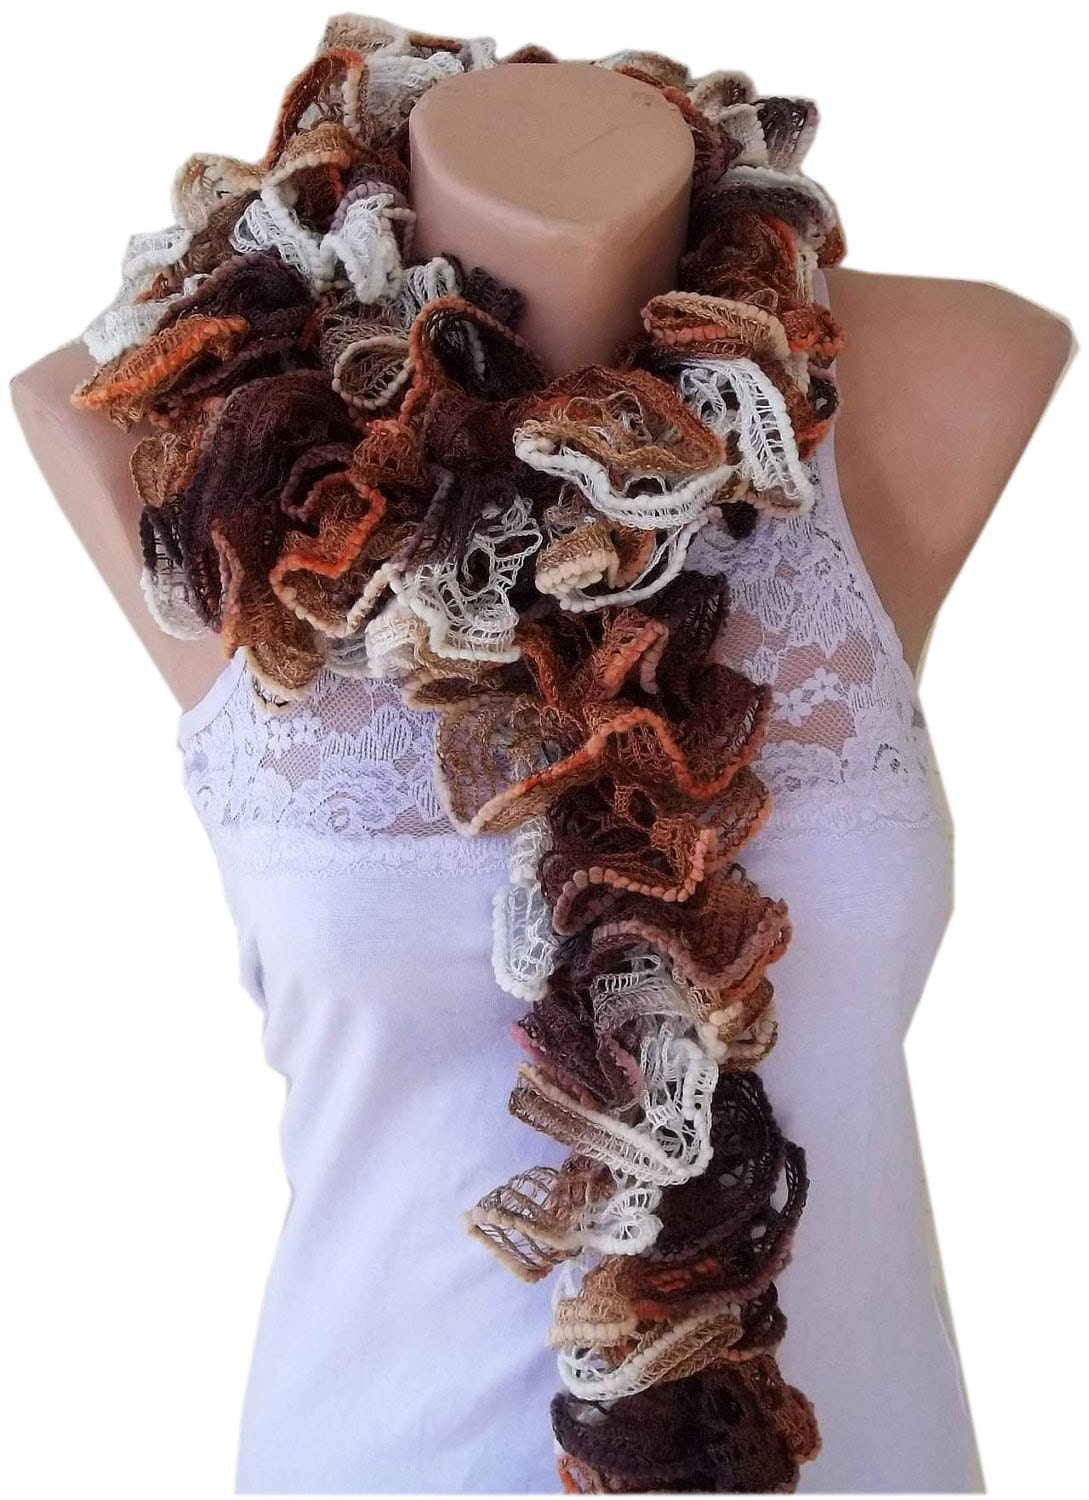 Knitting ruffle scarf, brown, gift for her, gift for mom, spring fashion - KnitterPrincess